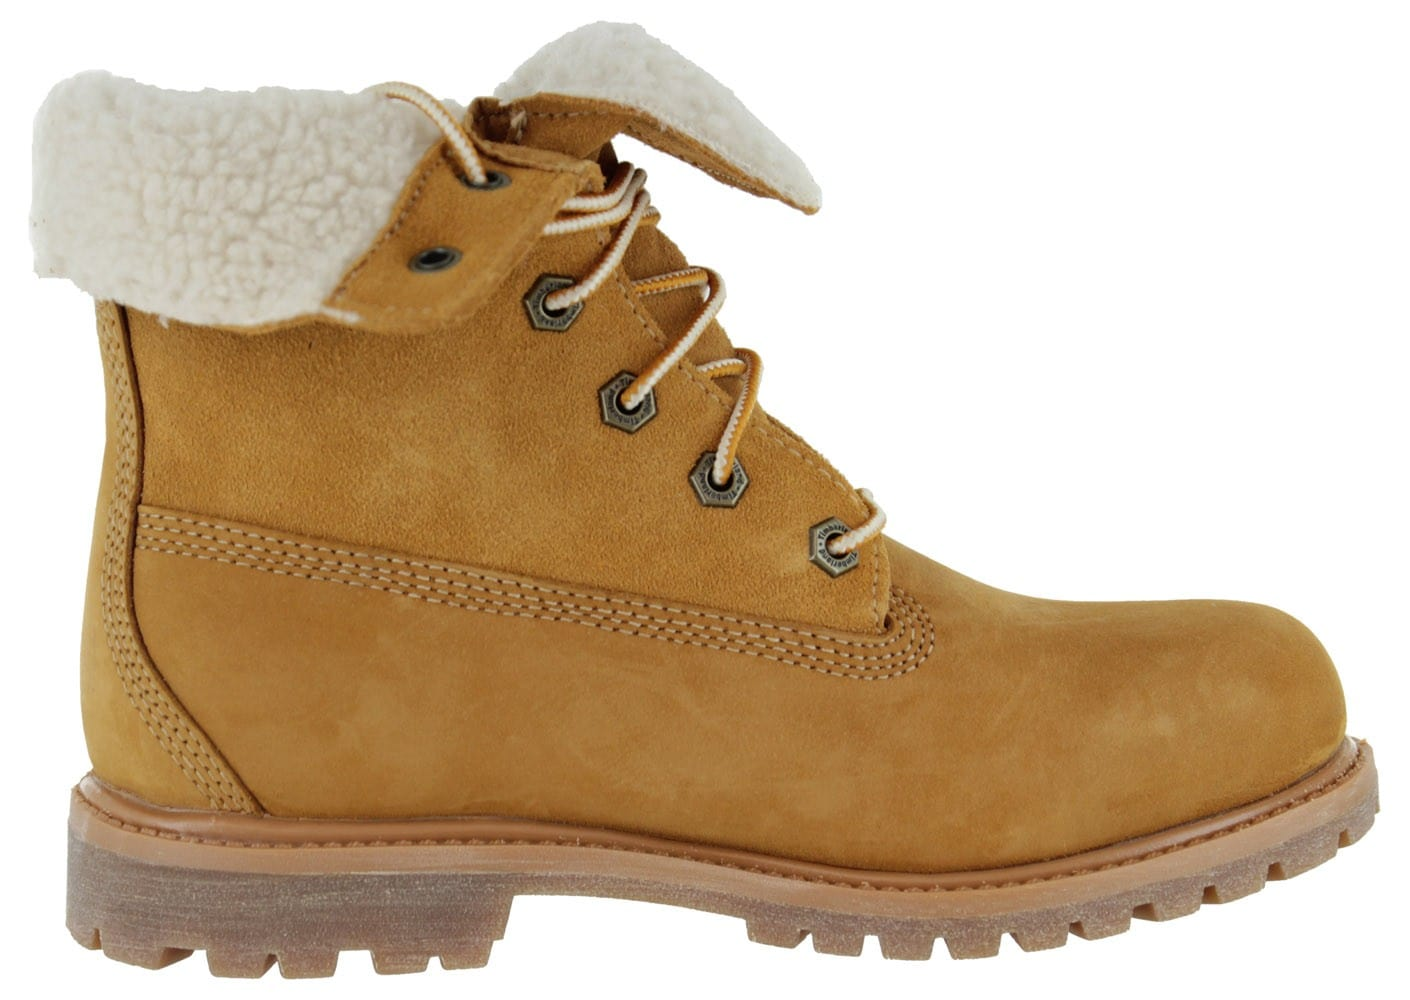 timberland boots authentics beige fourr e chaussures toutes les baskets sold es chausport. Black Bedroom Furniture Sets. Home Design Ideas